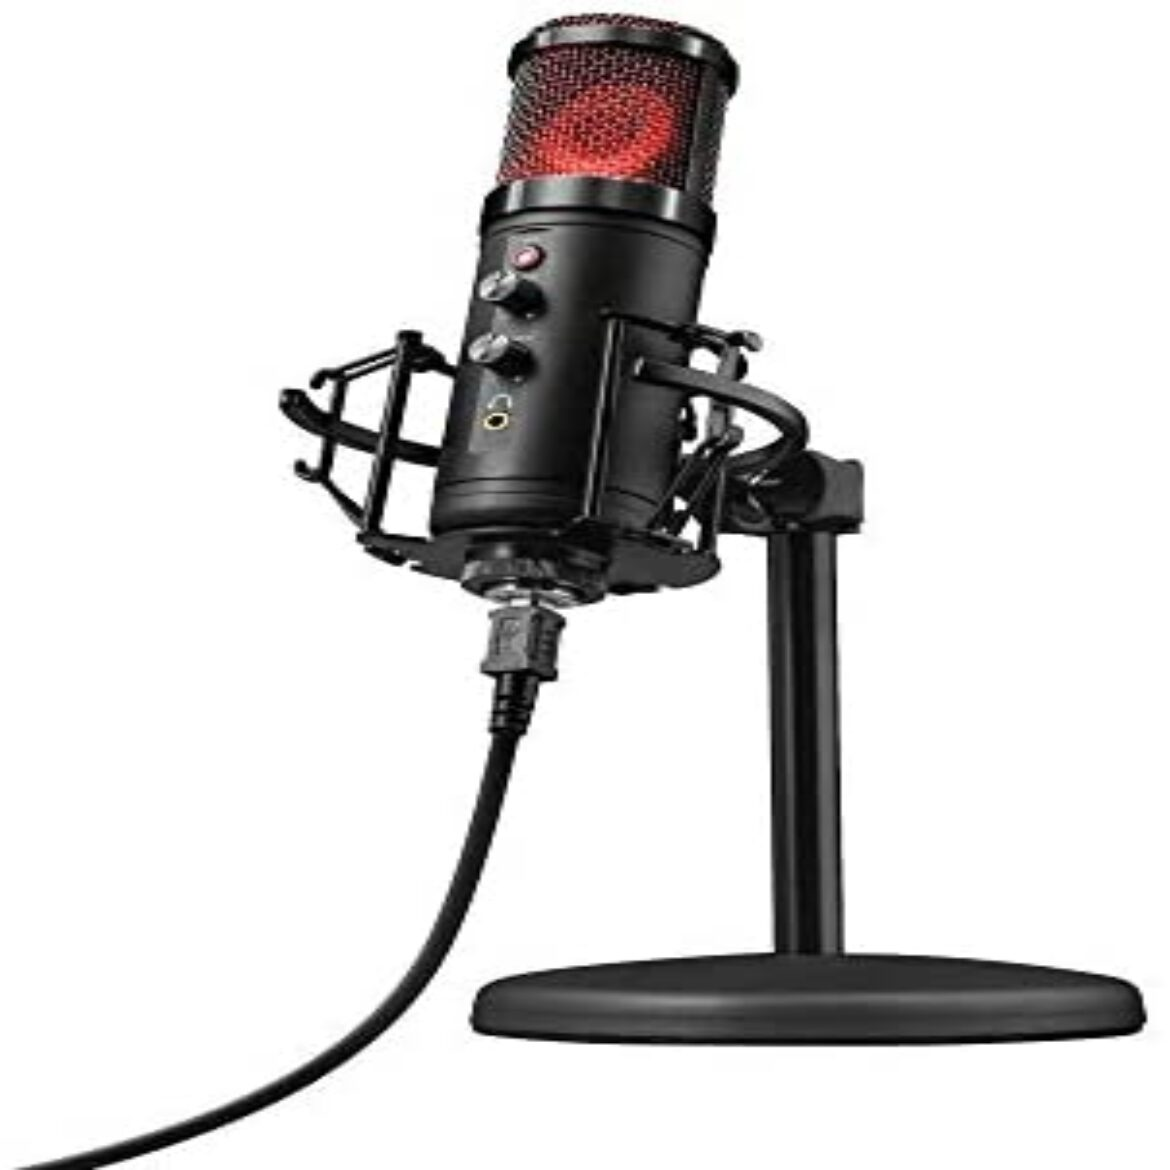 Belief Gaming GXT 256 Exxo USB Streaming Microphone for PC, Computer laptop and PS4 – Dim